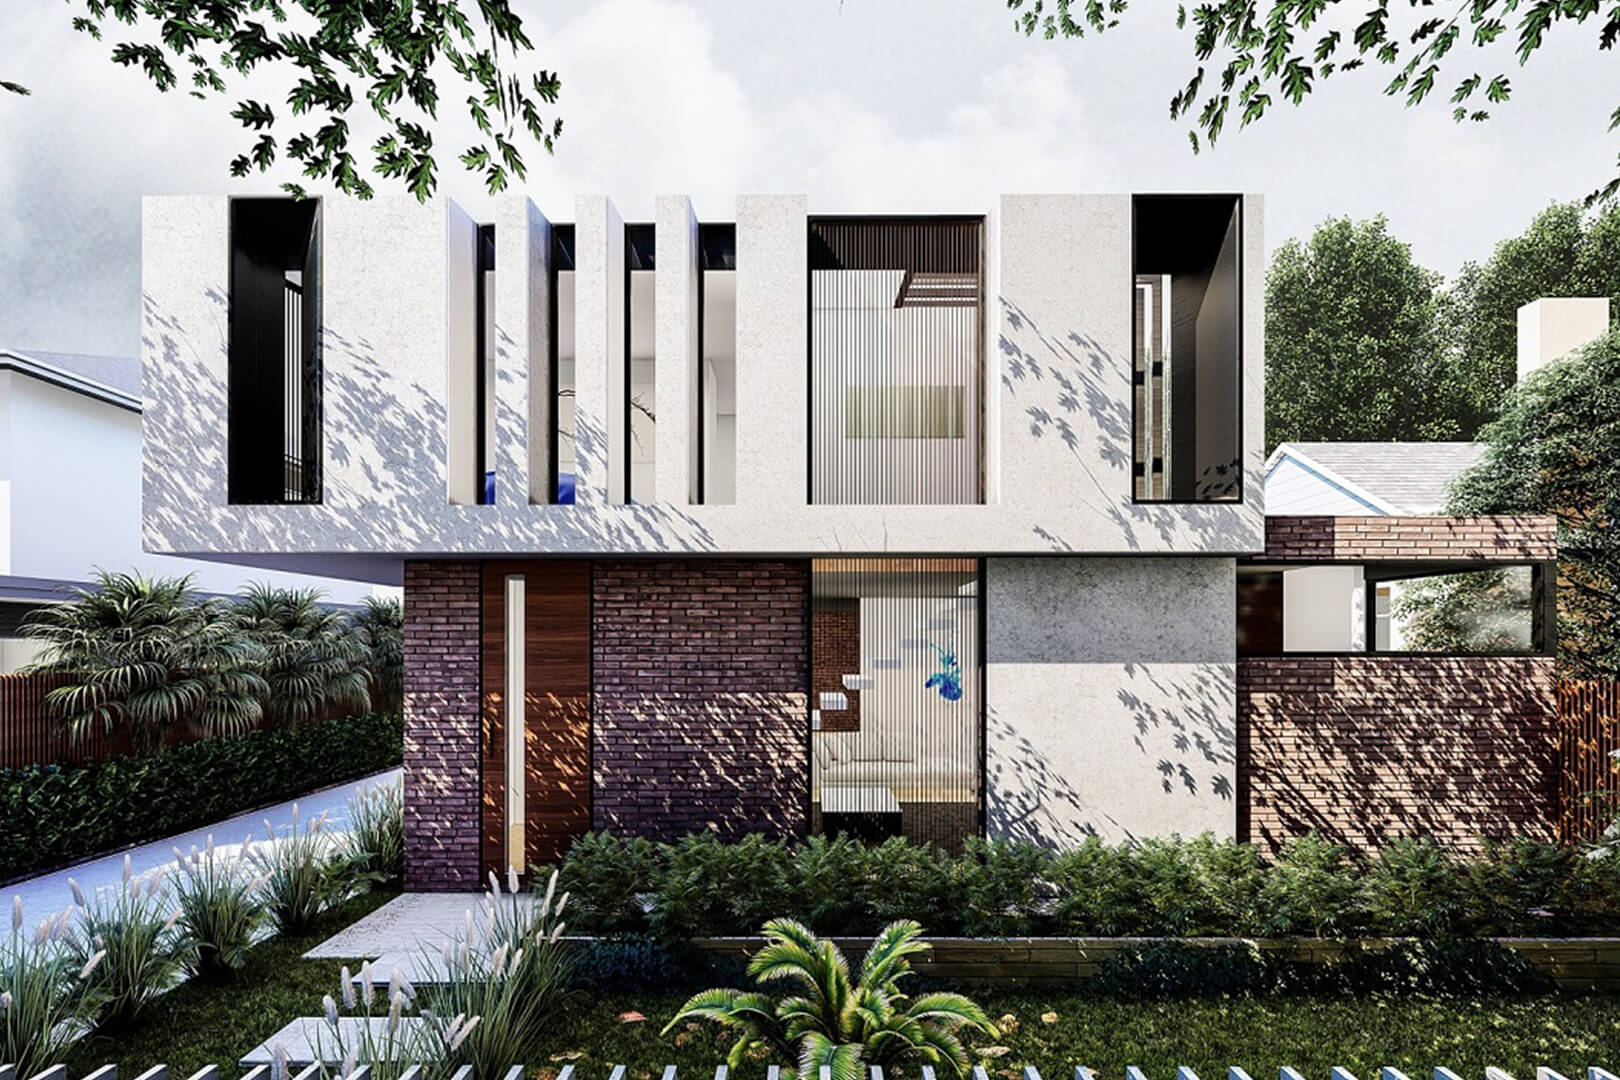 3 Unit Contemporary Townhouses in reservoir designed by Sky Architect Studio